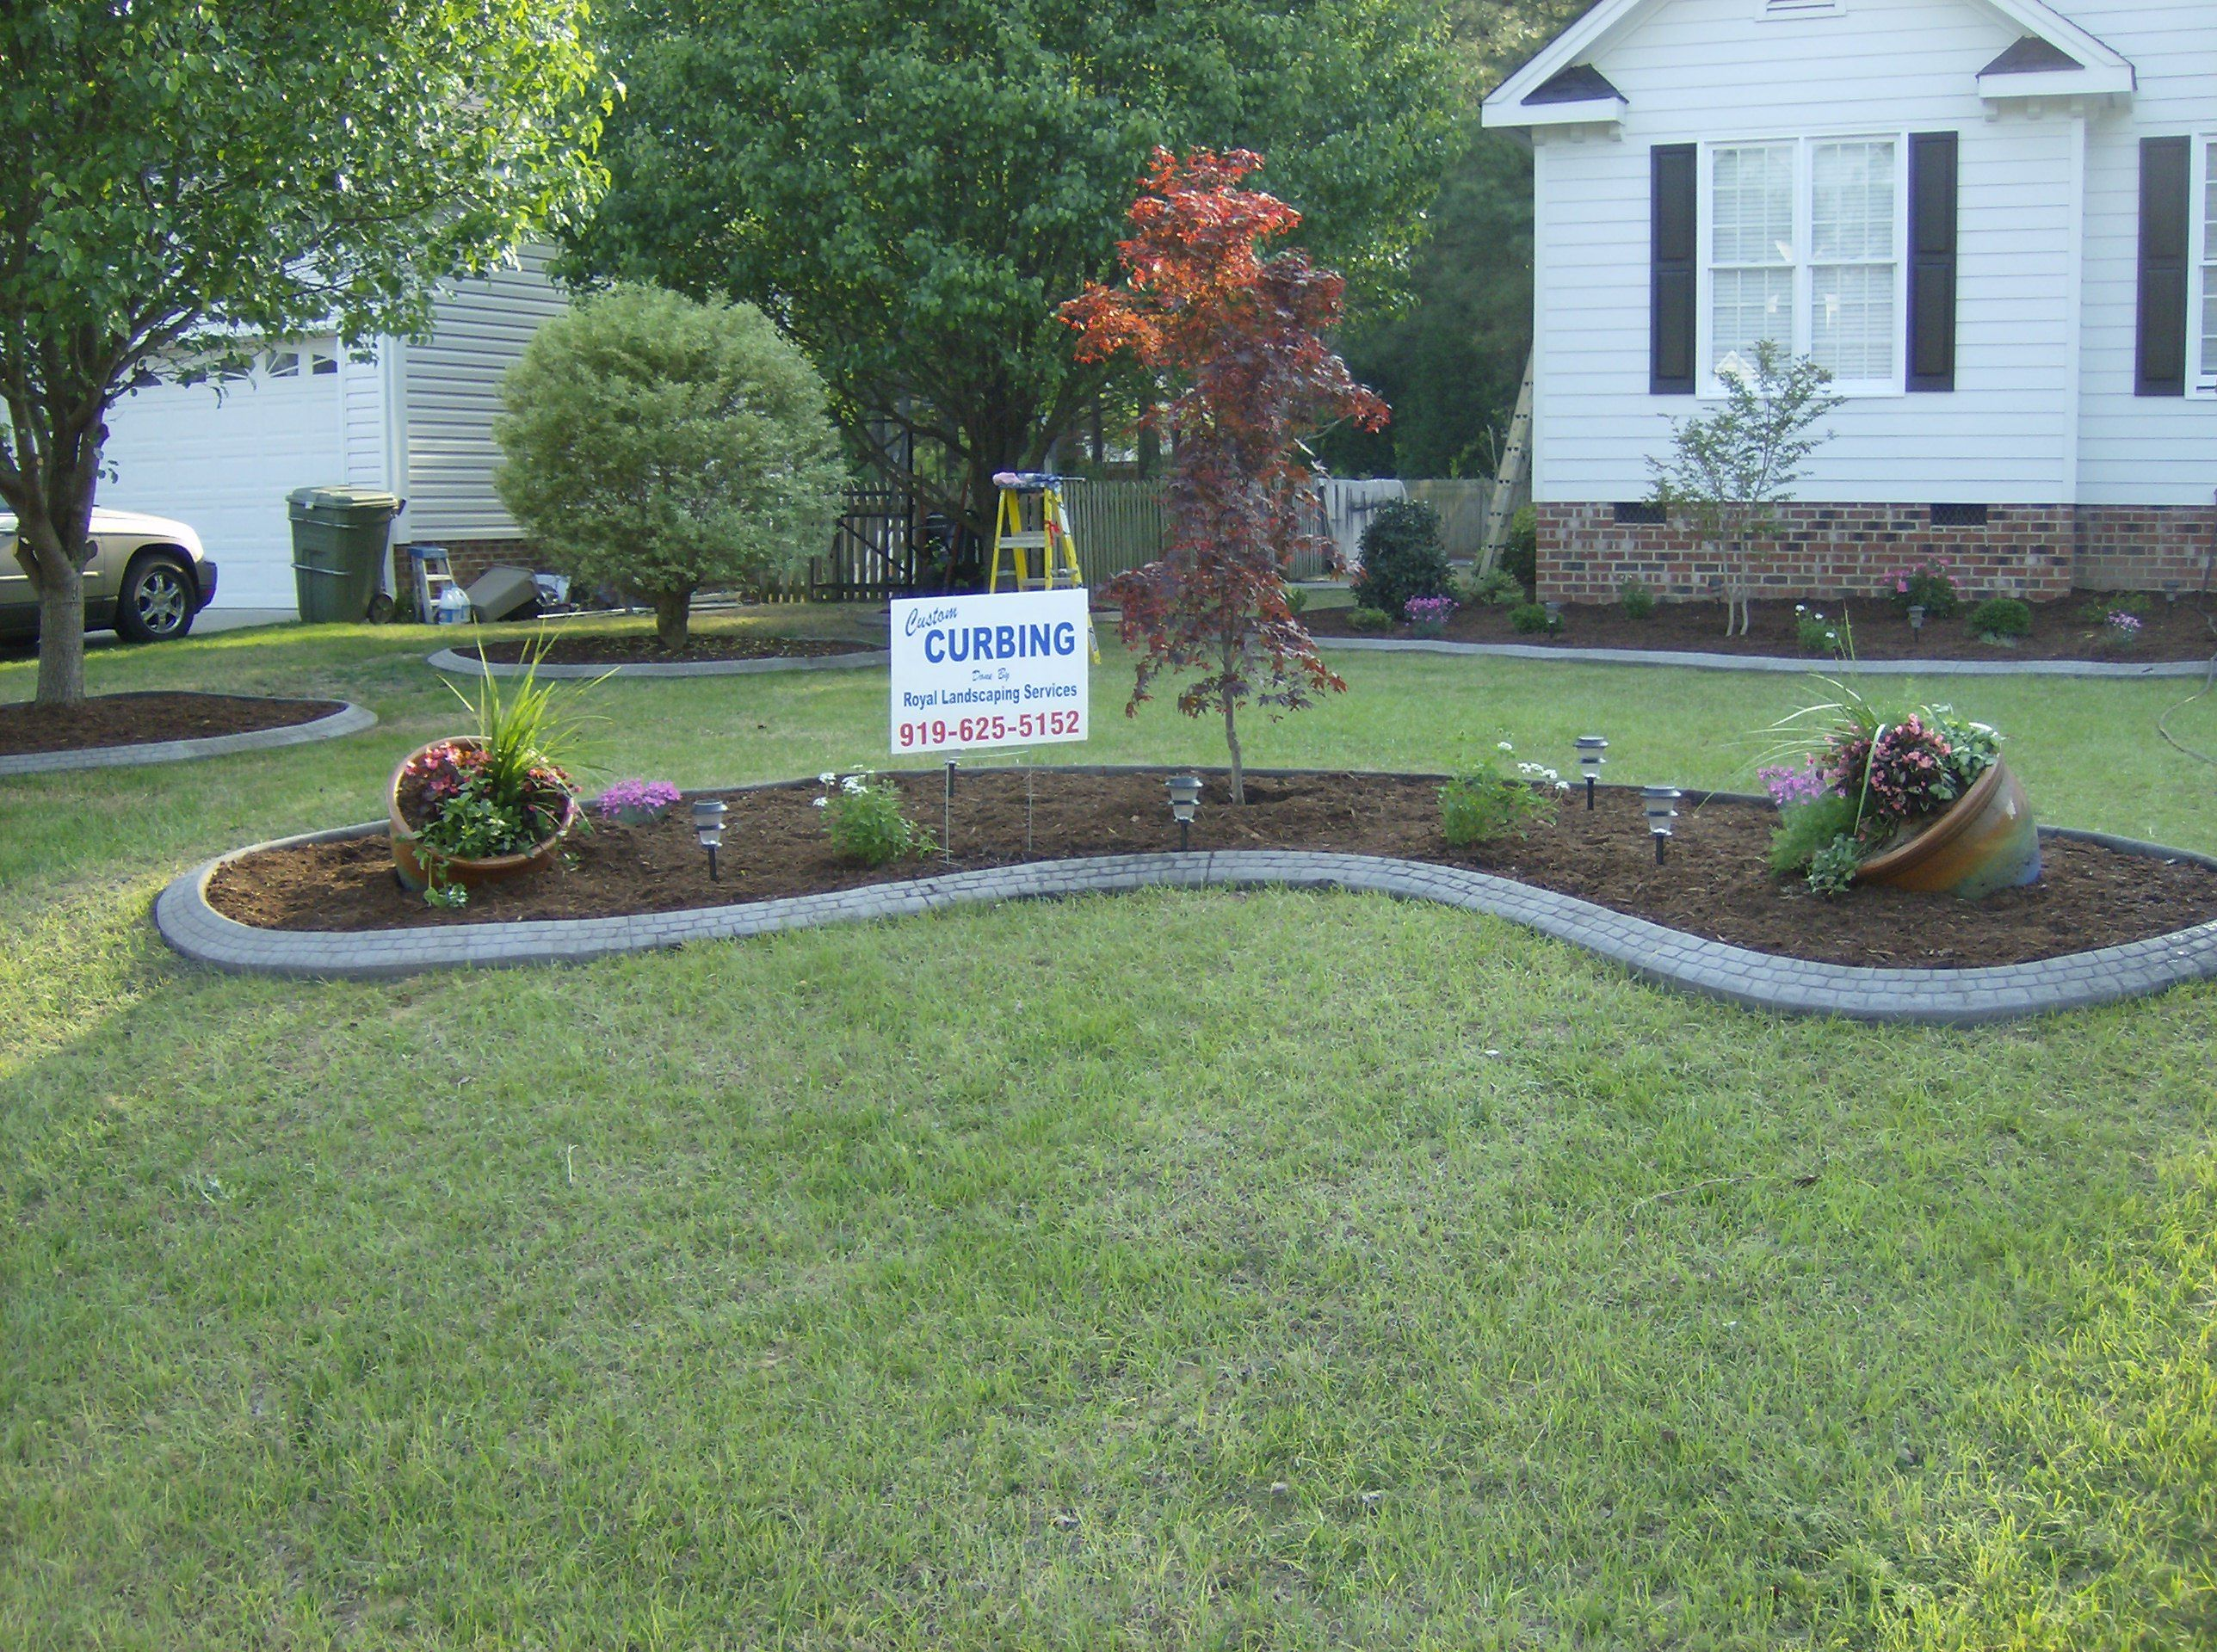 Flowerbed borders royal landscaping services and curbing for Flower bed borders